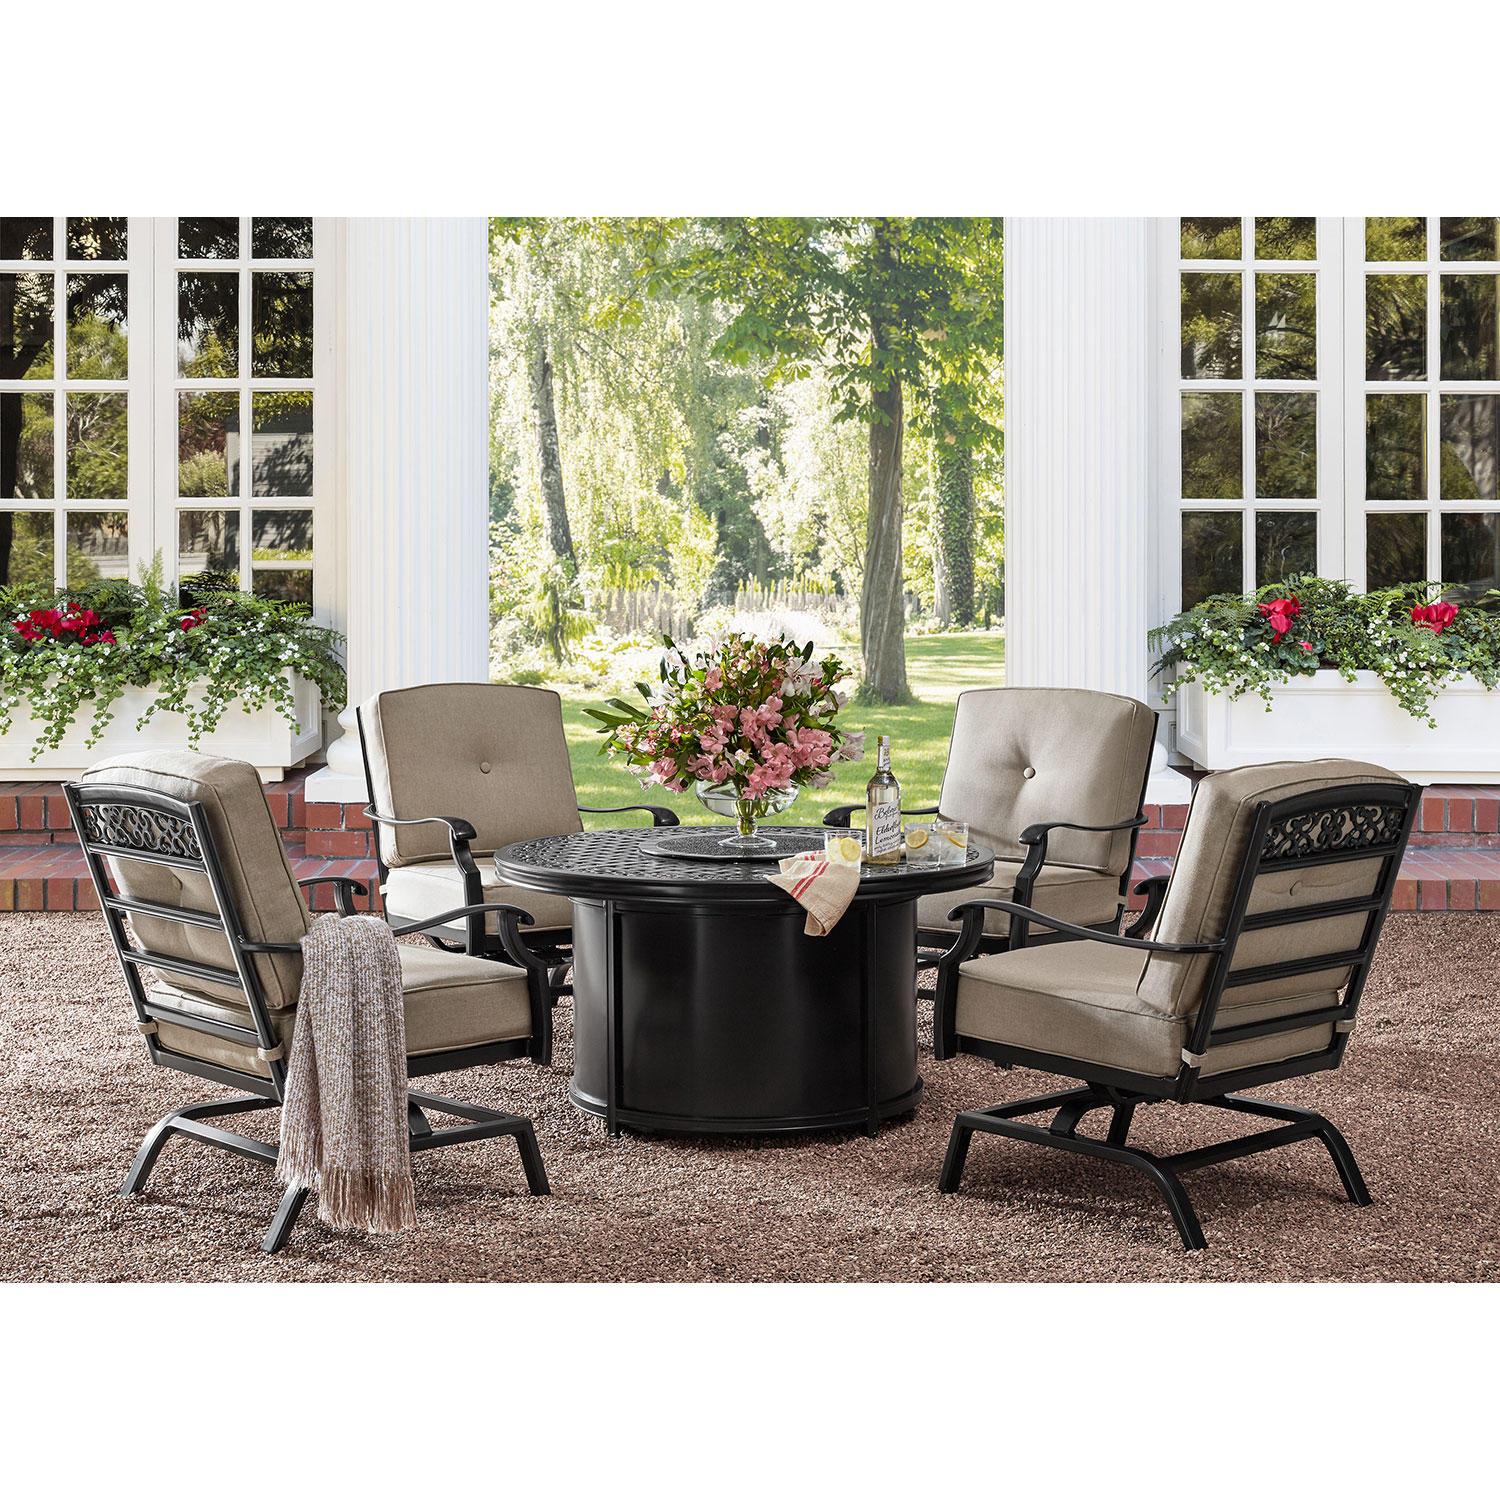 Member's Mark Agio Hastings 5-Piece Fire Pit Patio Chat Set with Sunbrella Fabric